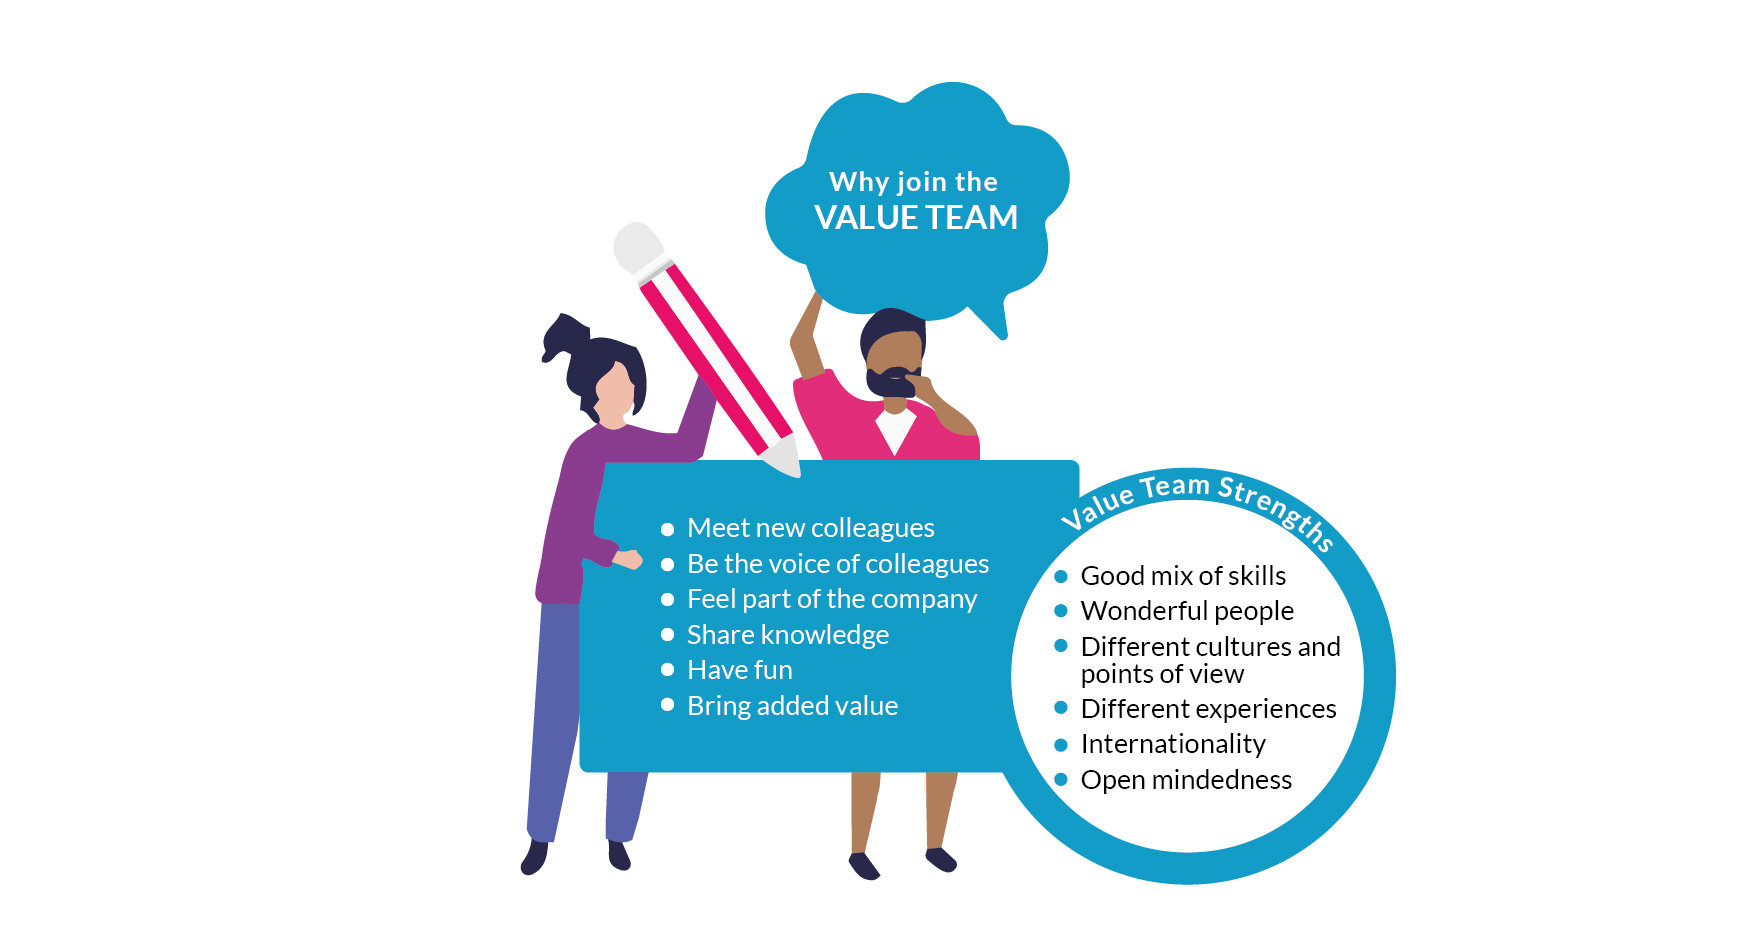 Why join the Value Team